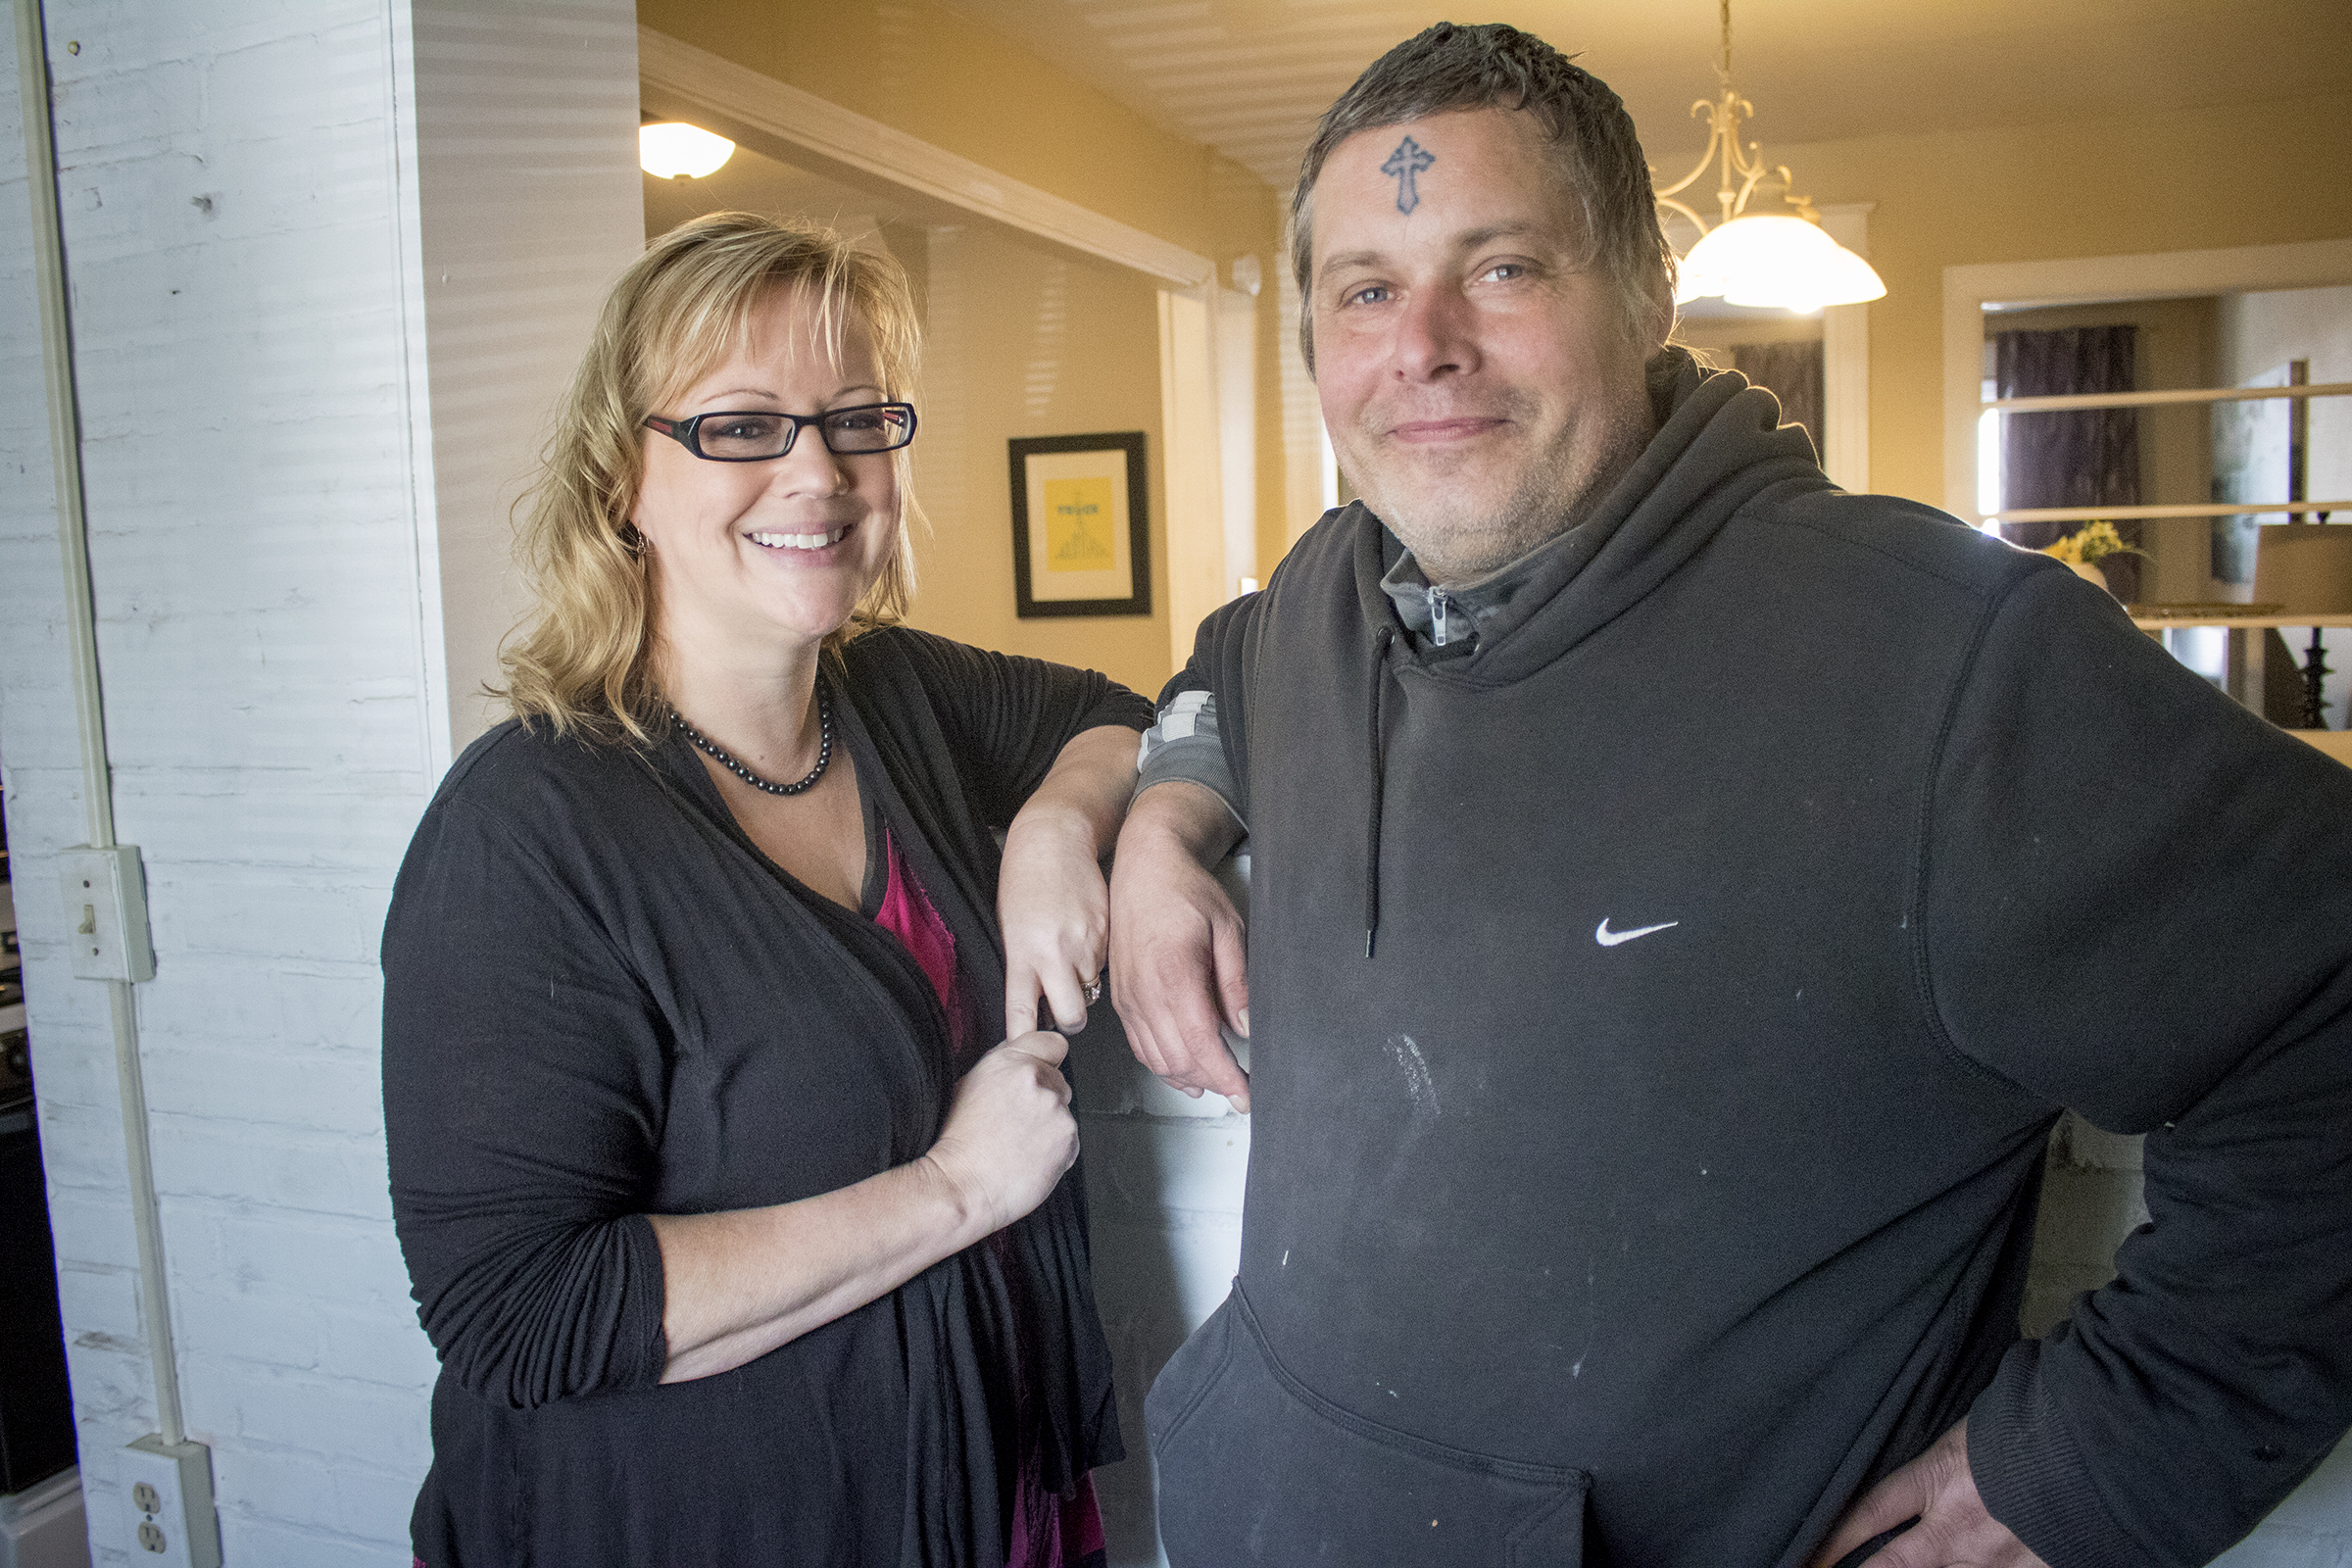 Michelle McHugh got the ball rolling with crowd-sourcing a new home for Jon, who had been homeless. ANTHONY BELTRAN / Staff Photographer.